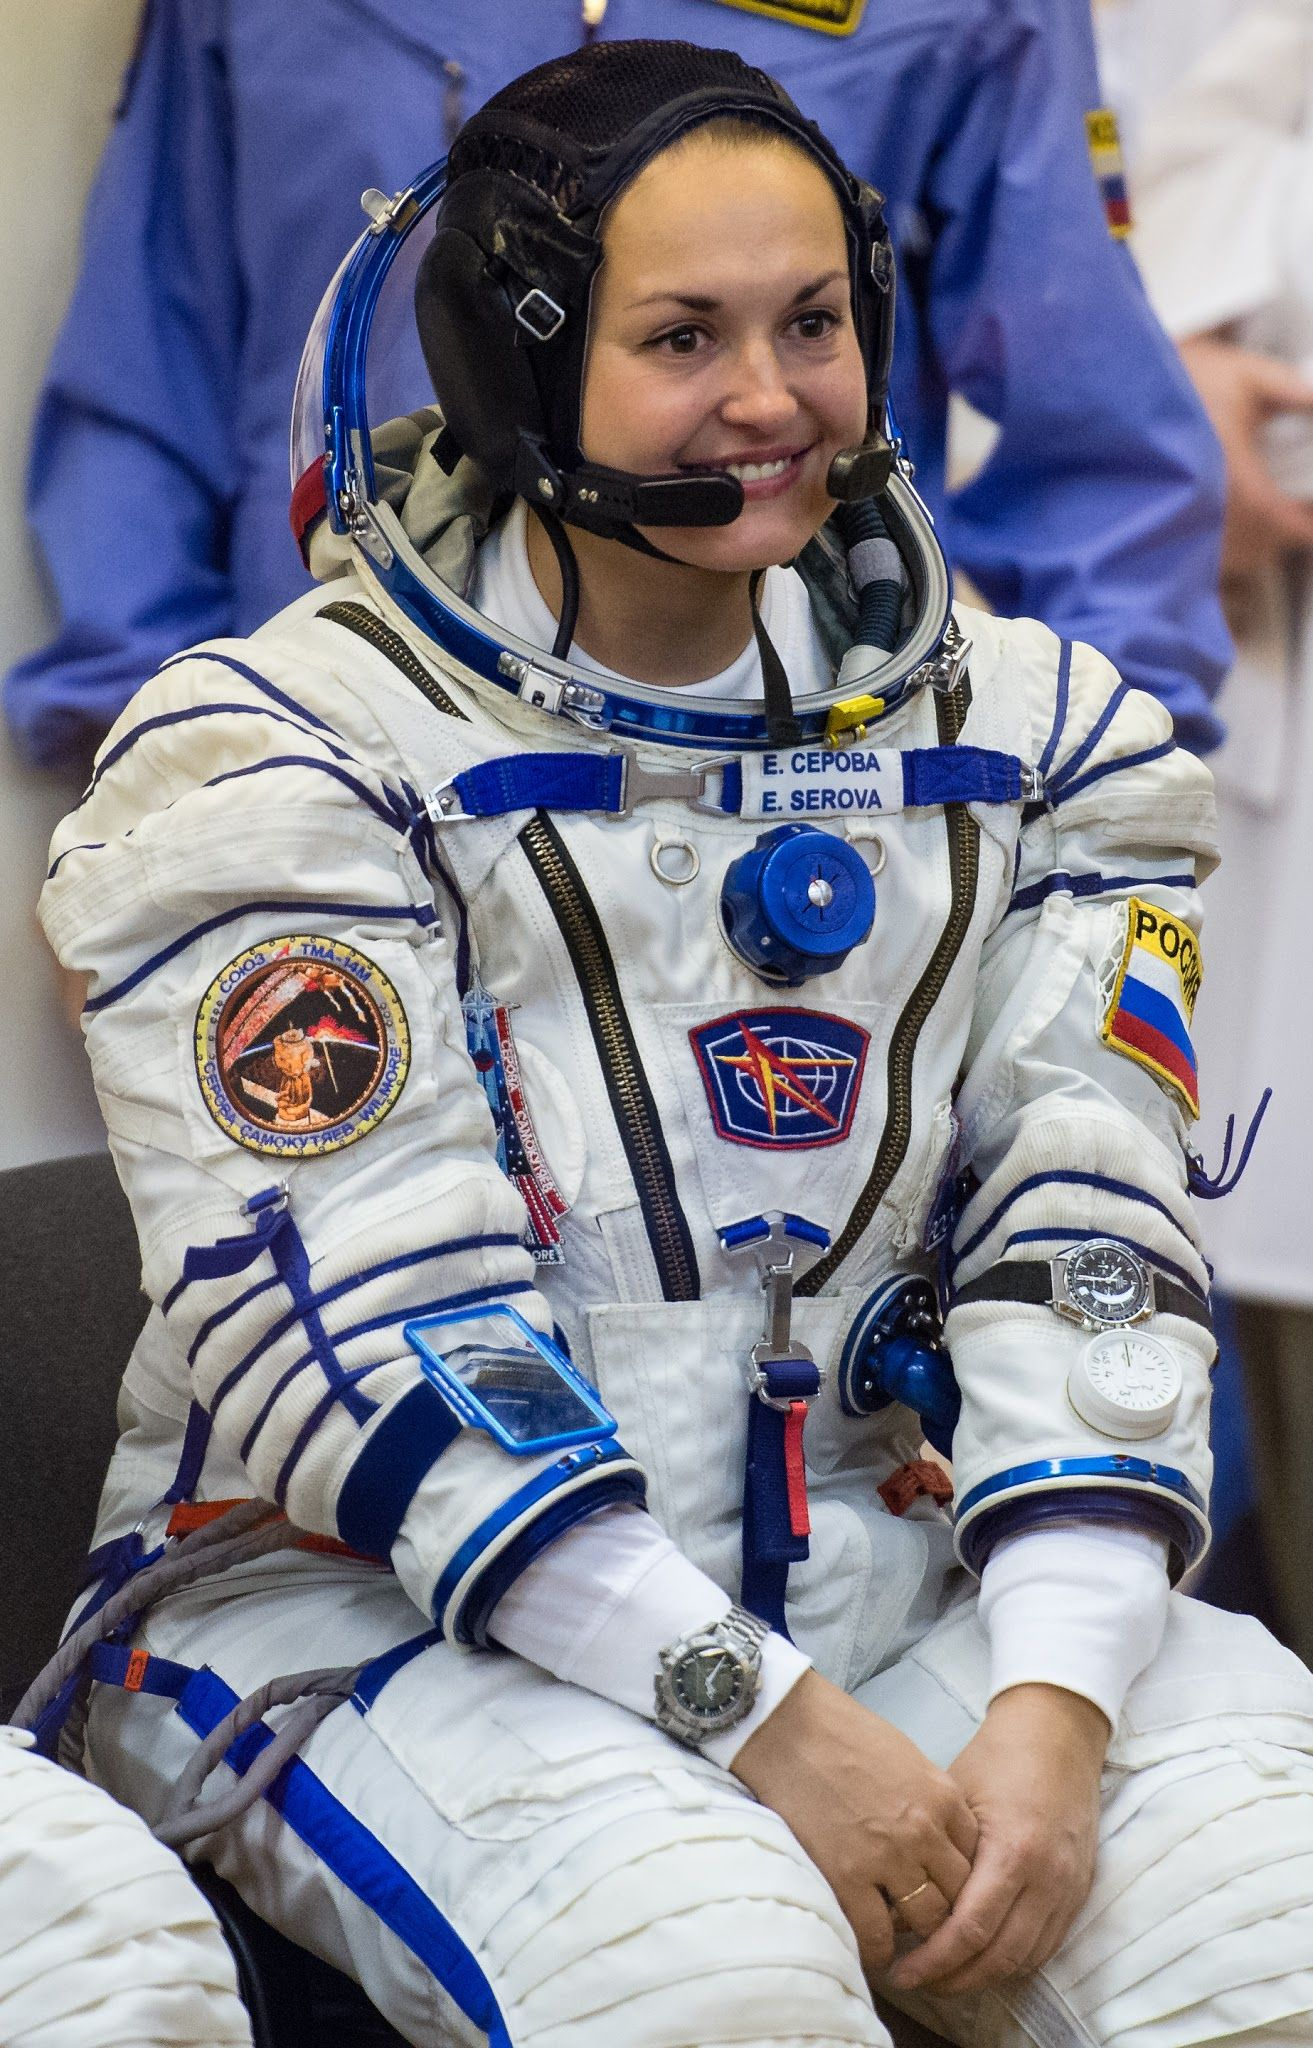 Expedition 41 Flight Engineer Elena Serova of the Russian Federal Space Agency (Roscosmos) is seen prior to having her Russian Sokol suit pressure checked in preparation for her launch onboard the Soyuz TMA-14M spacecraft on Thursday, September 25, 2014, at the Baikonur Cosmodrome in Kazakhstan. - via Friends of NASA